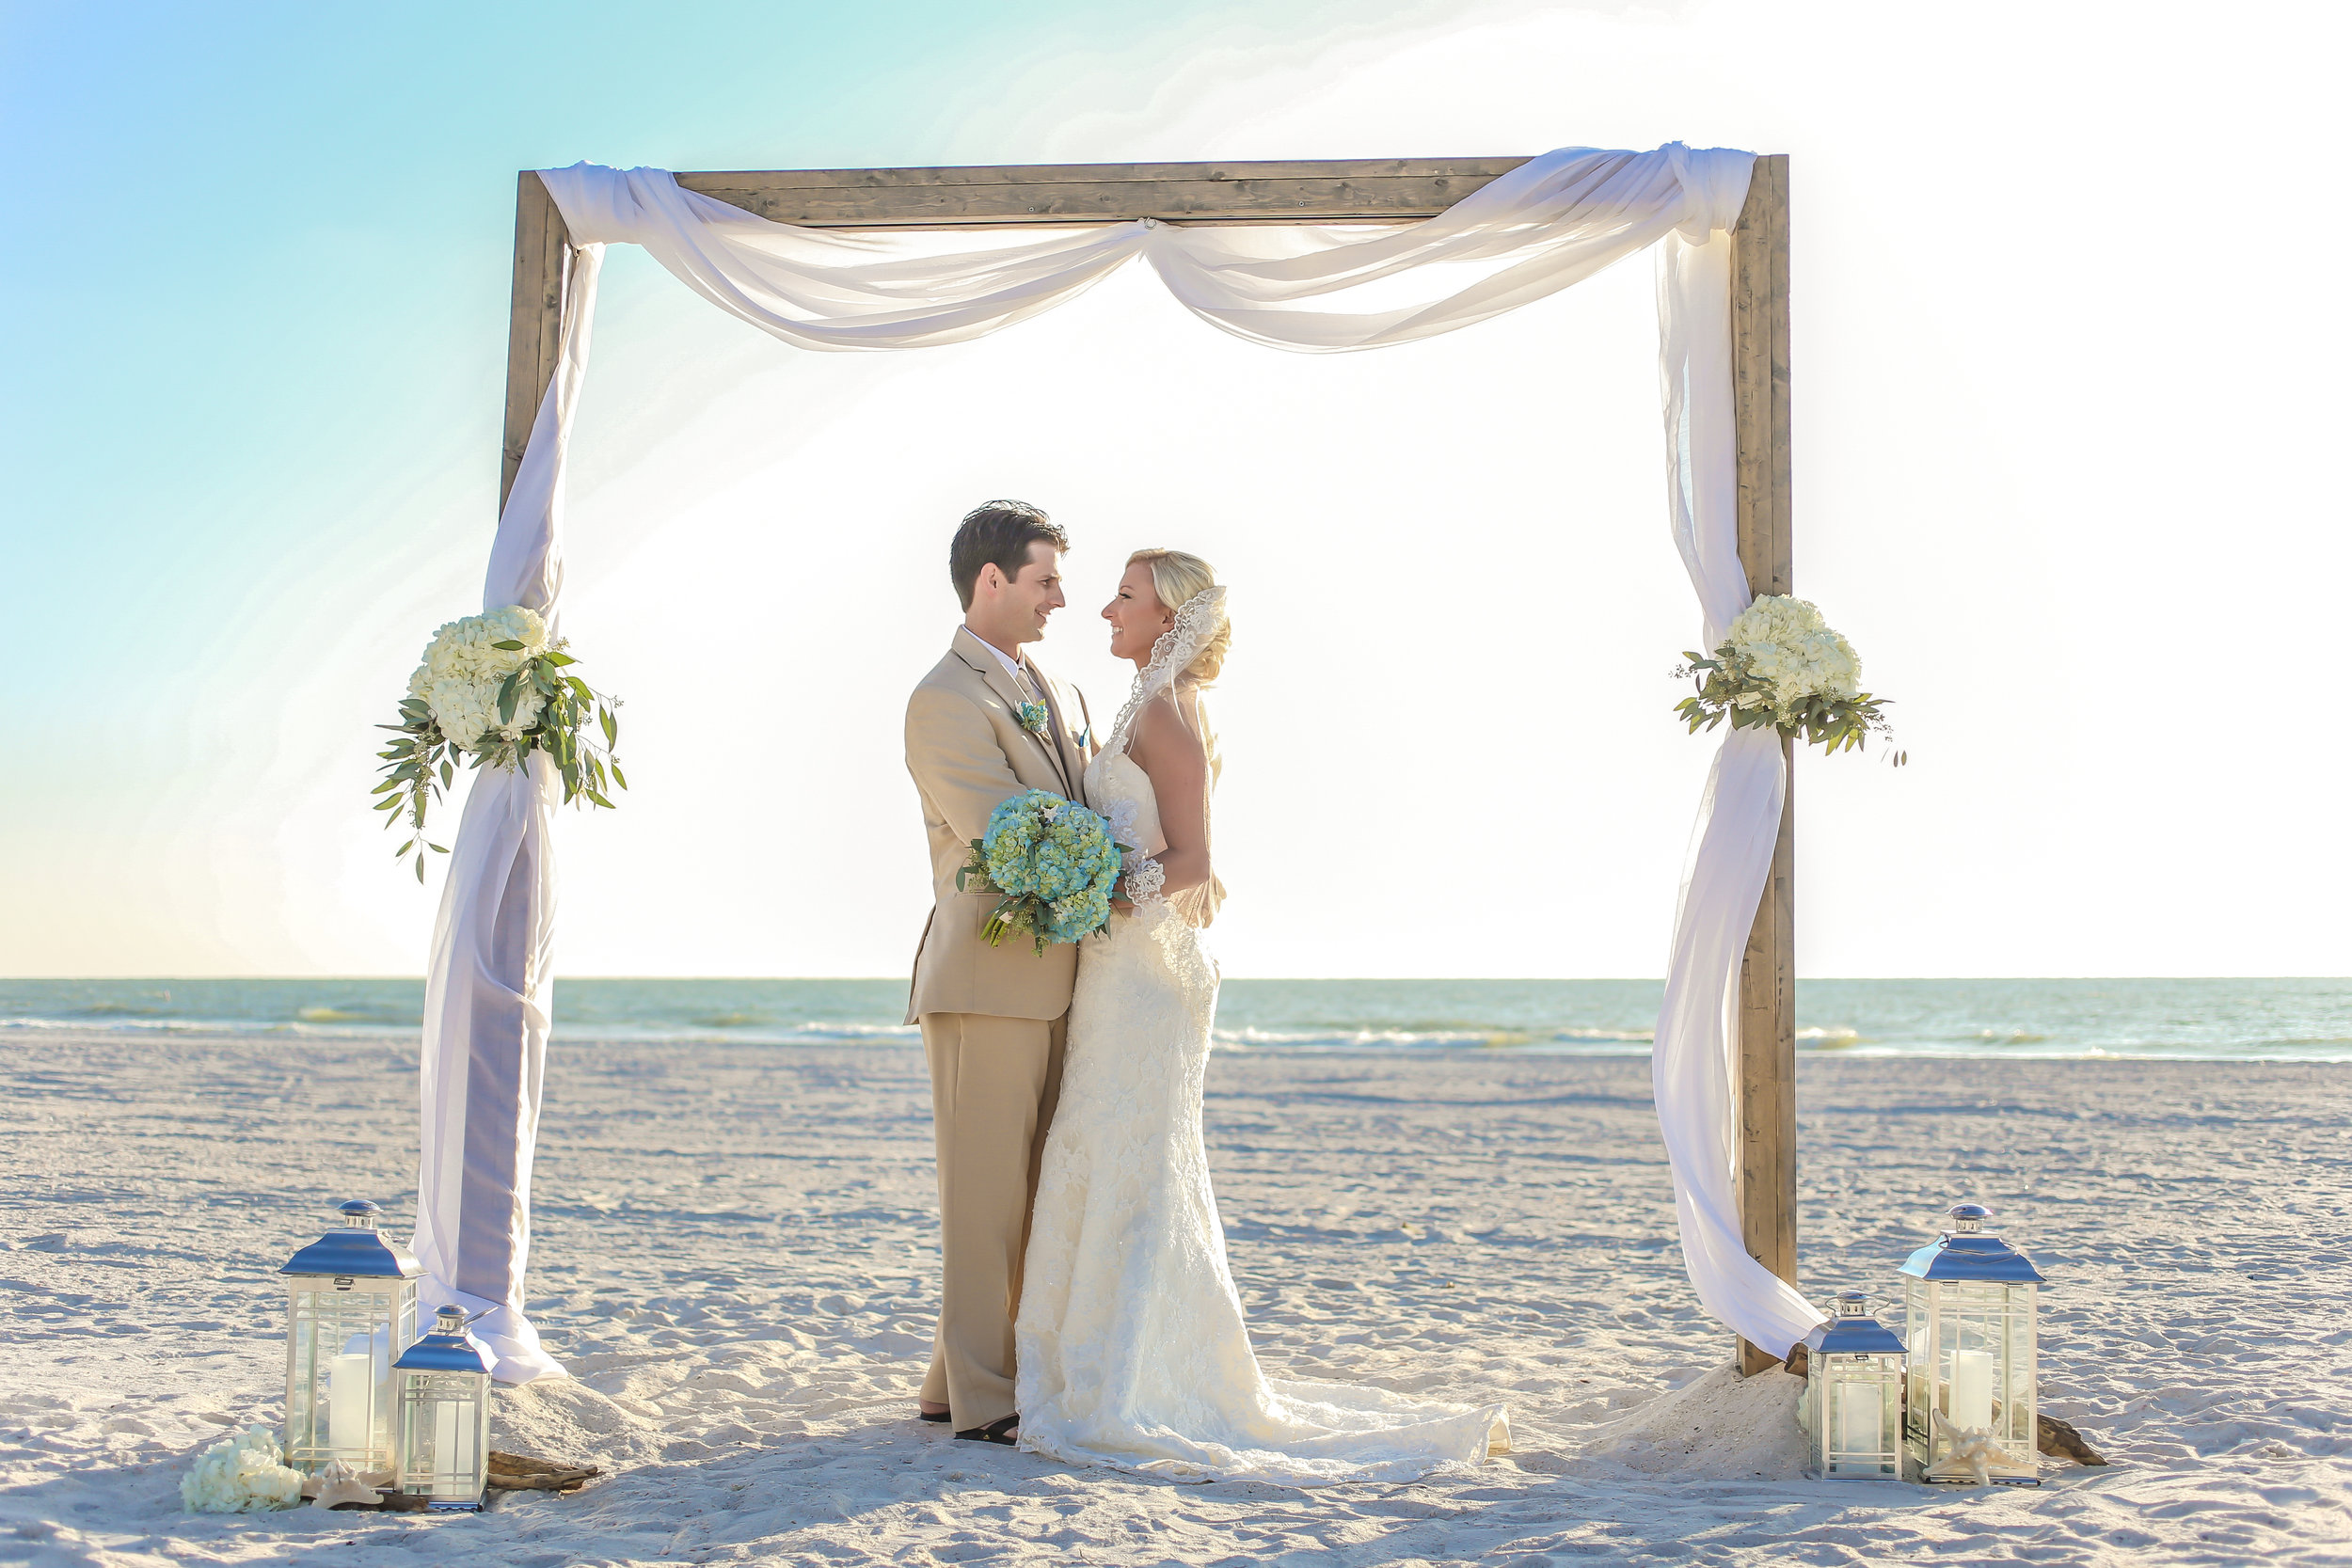 The couple were married beneath a natural wood ceremony arch adorned with neutral flowers, lanterns, and chiffon drapery.